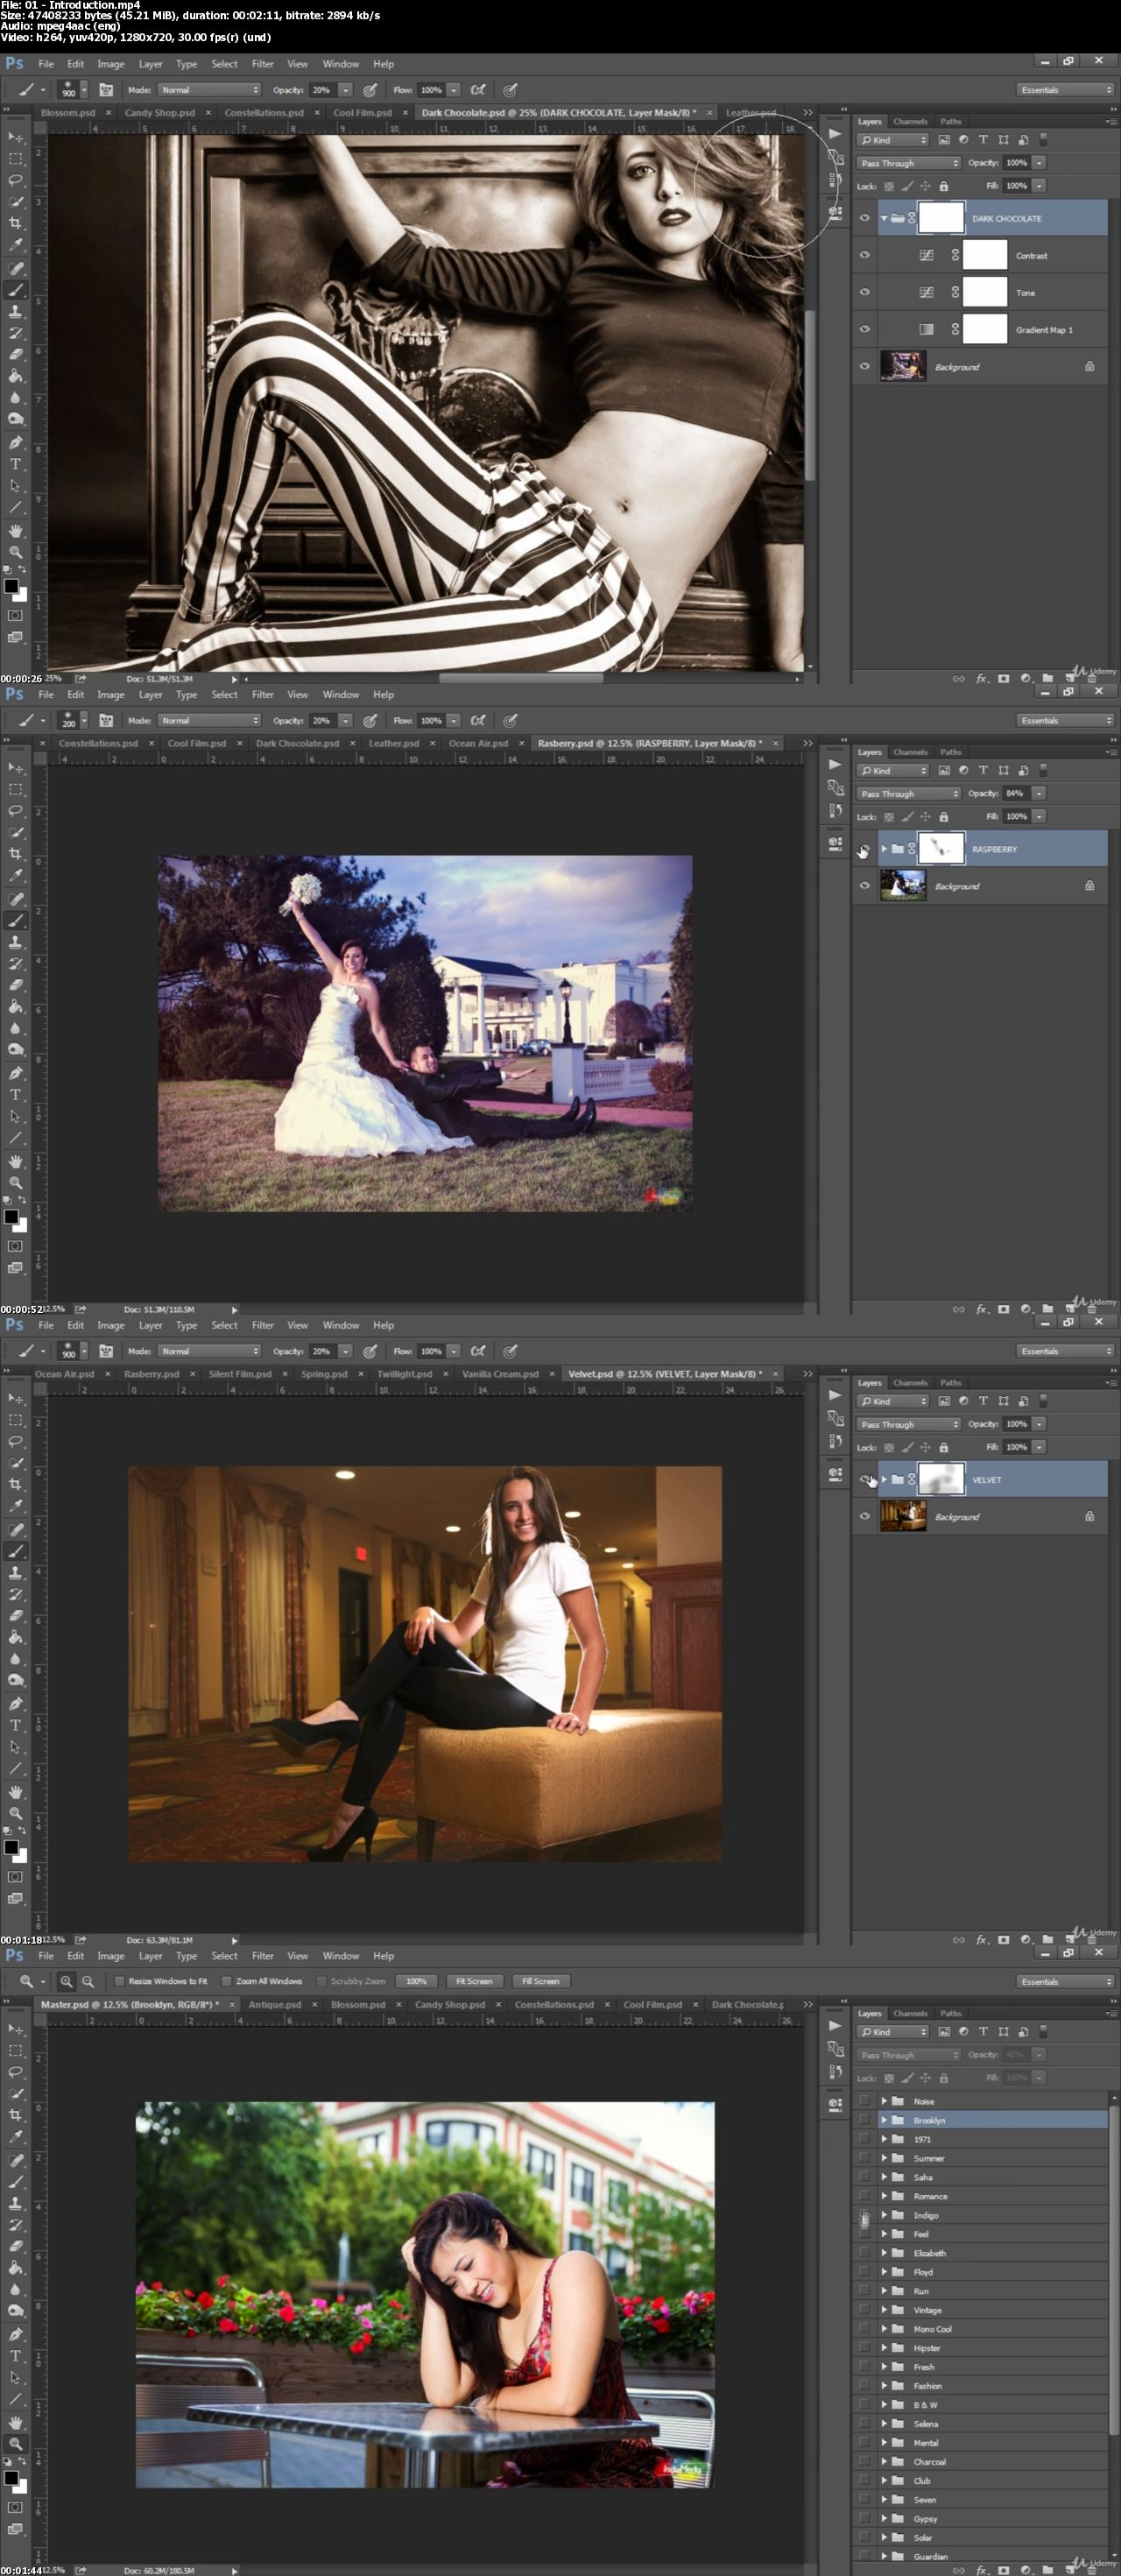 Photoshop Actions for Photographers (50 Actions + Samples)